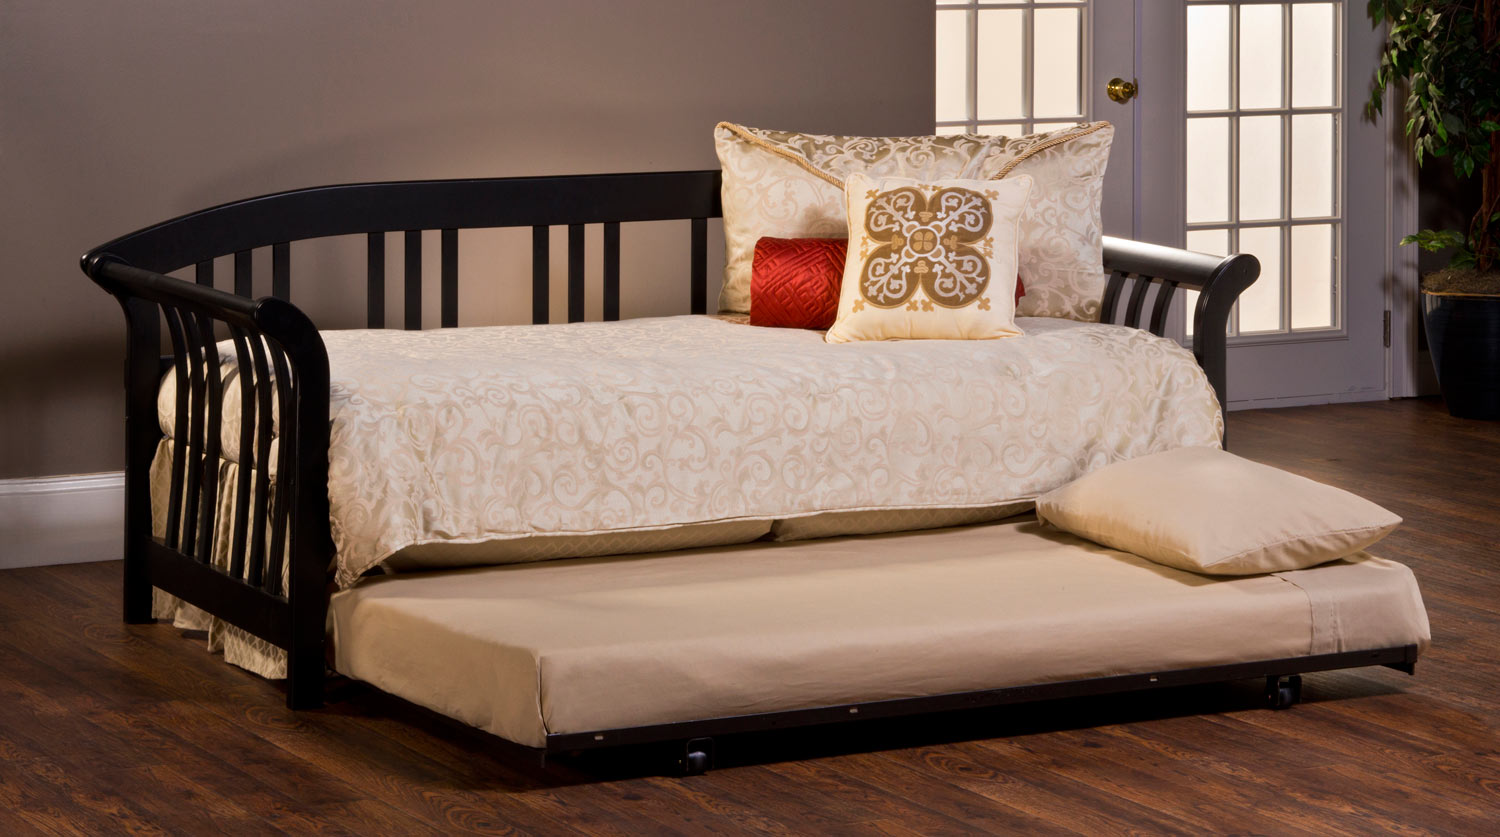 Hillsdale Dorchester Daybed With Suspension Deck And